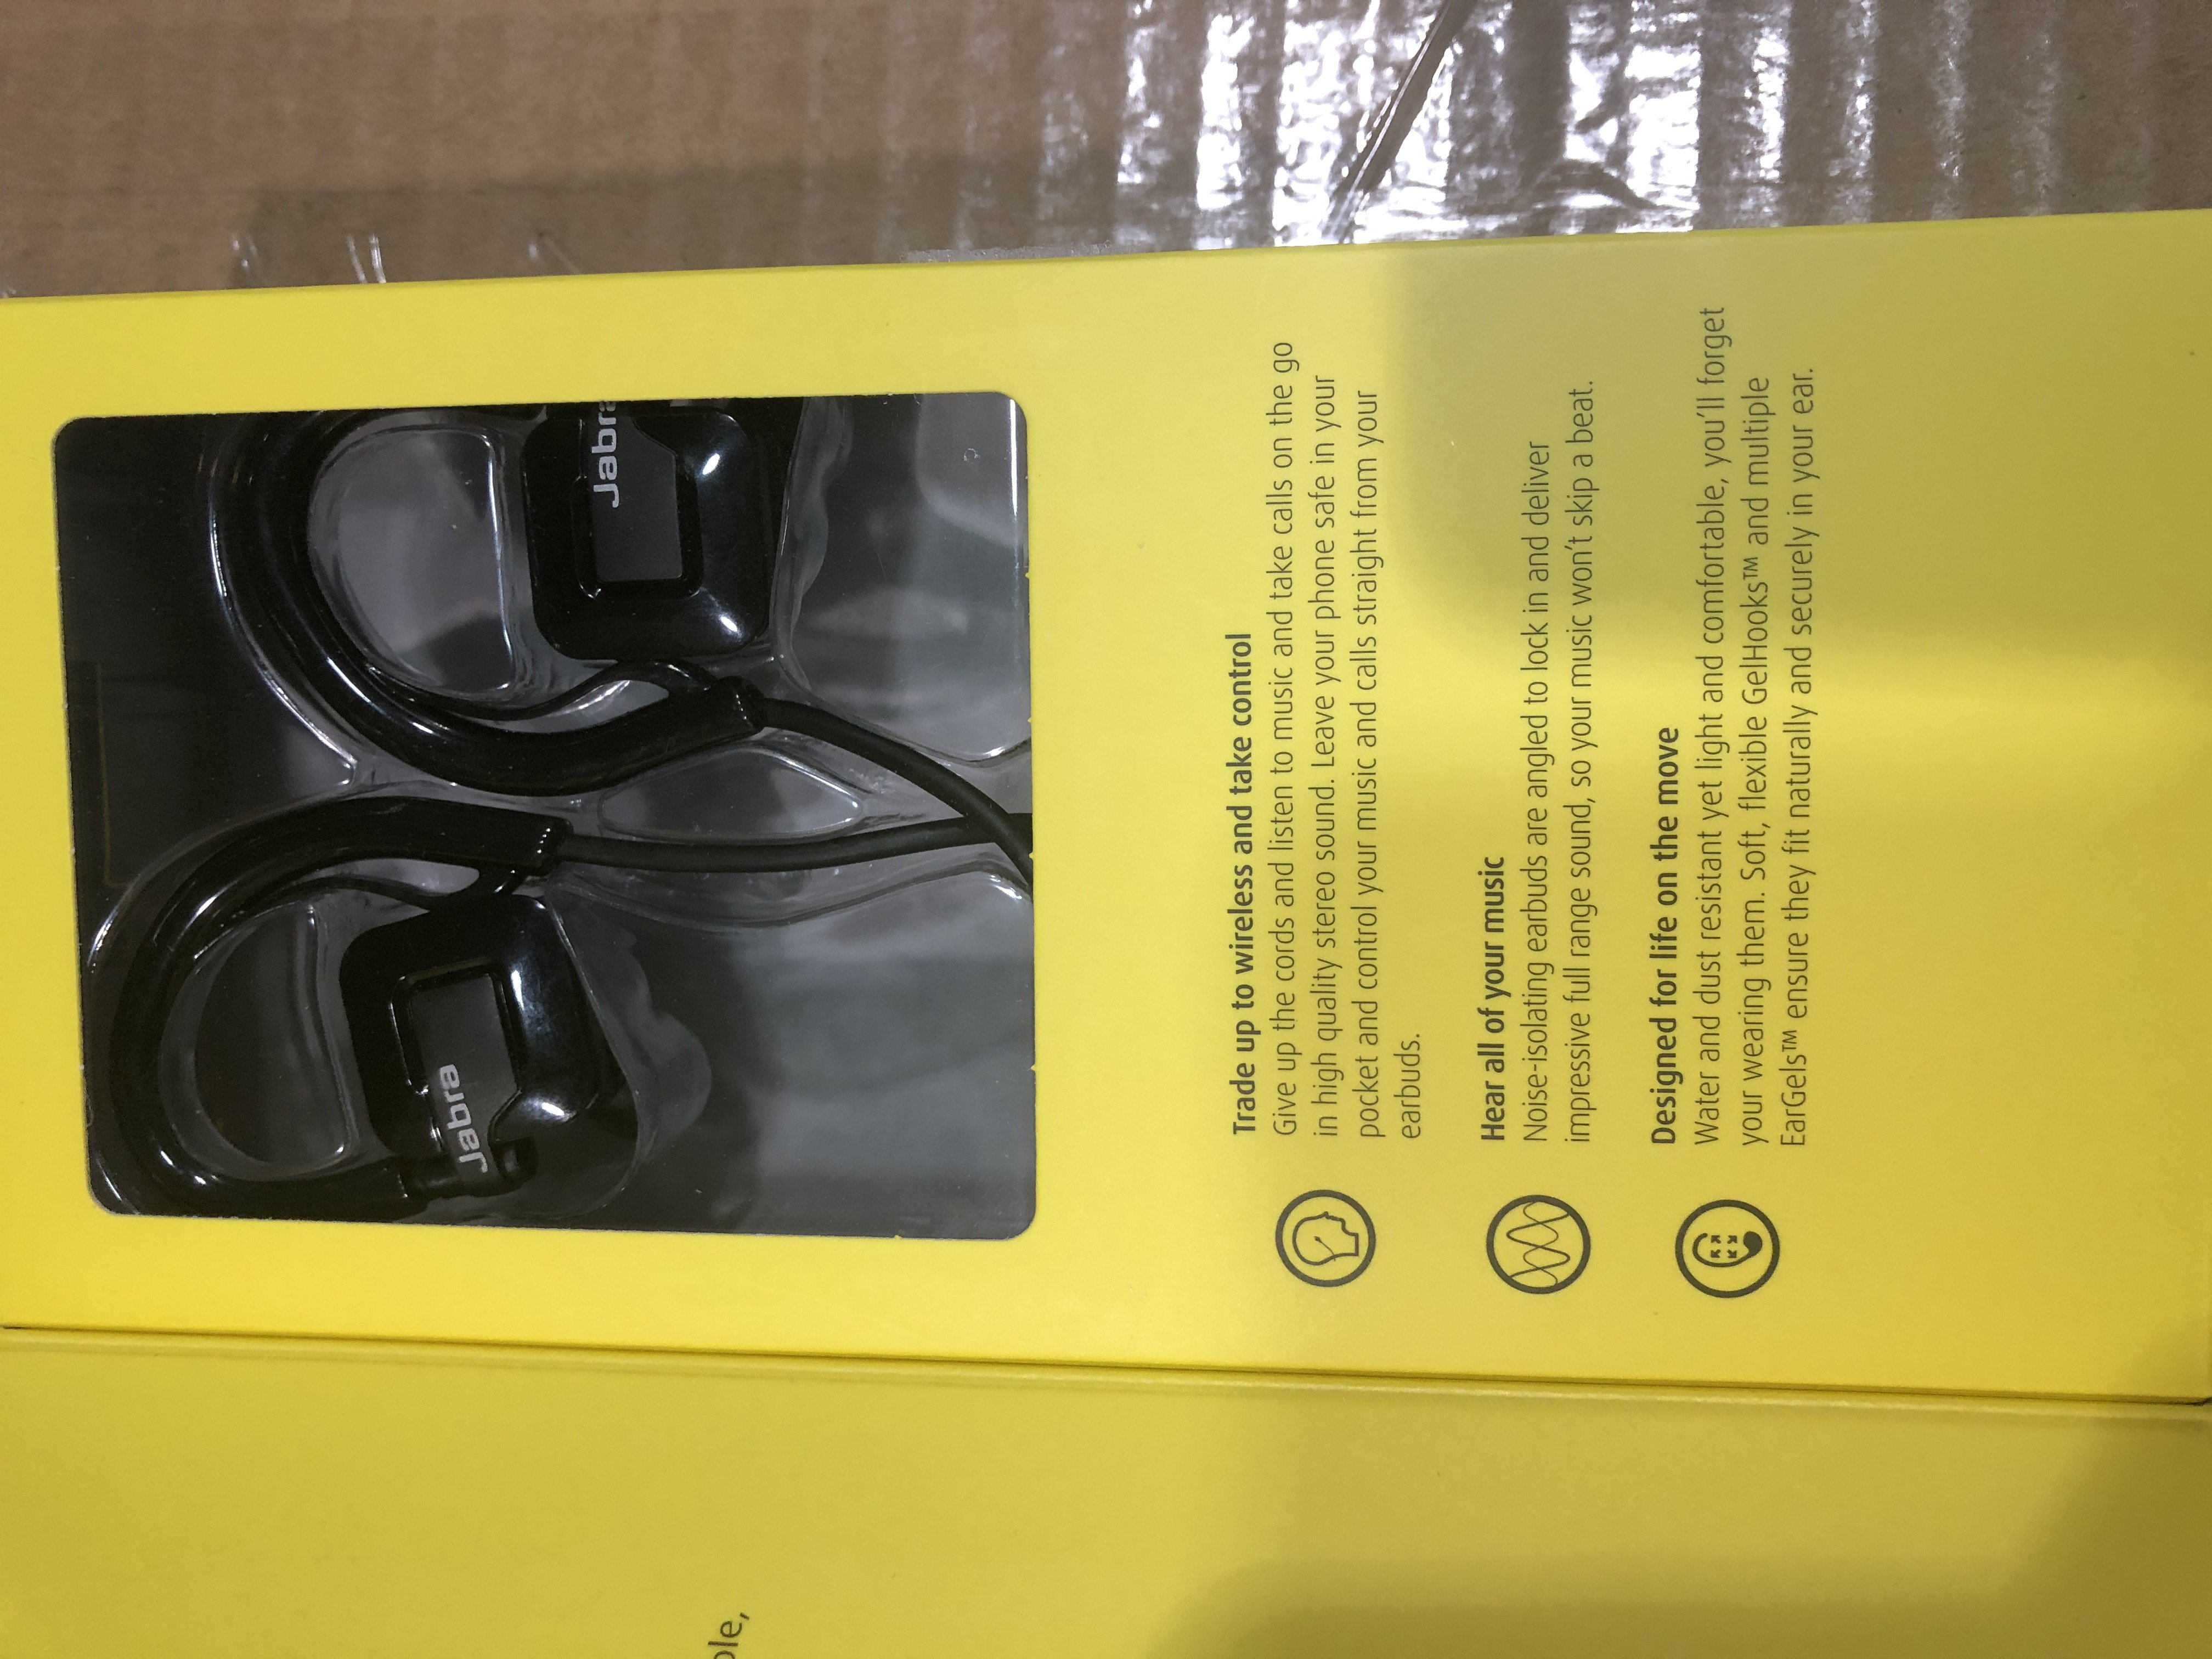 Jabra Bluetooth Headsets - STORM, STYLE, STEP and CLASSIC